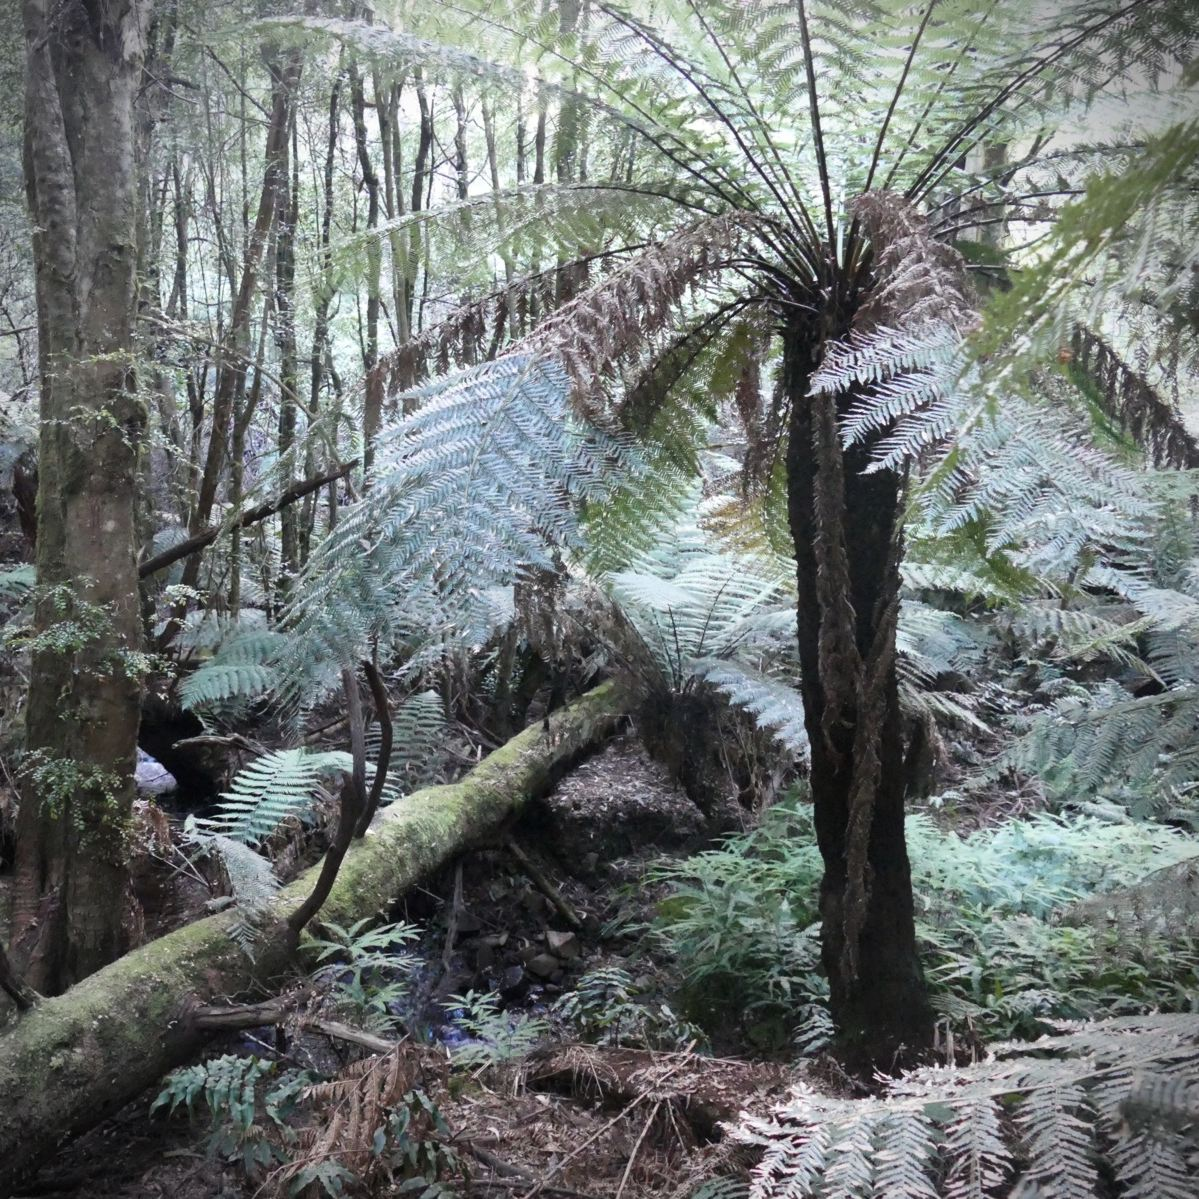 Gullies in Toolangi State Forest are lush with tree ferns. Noah Strycker